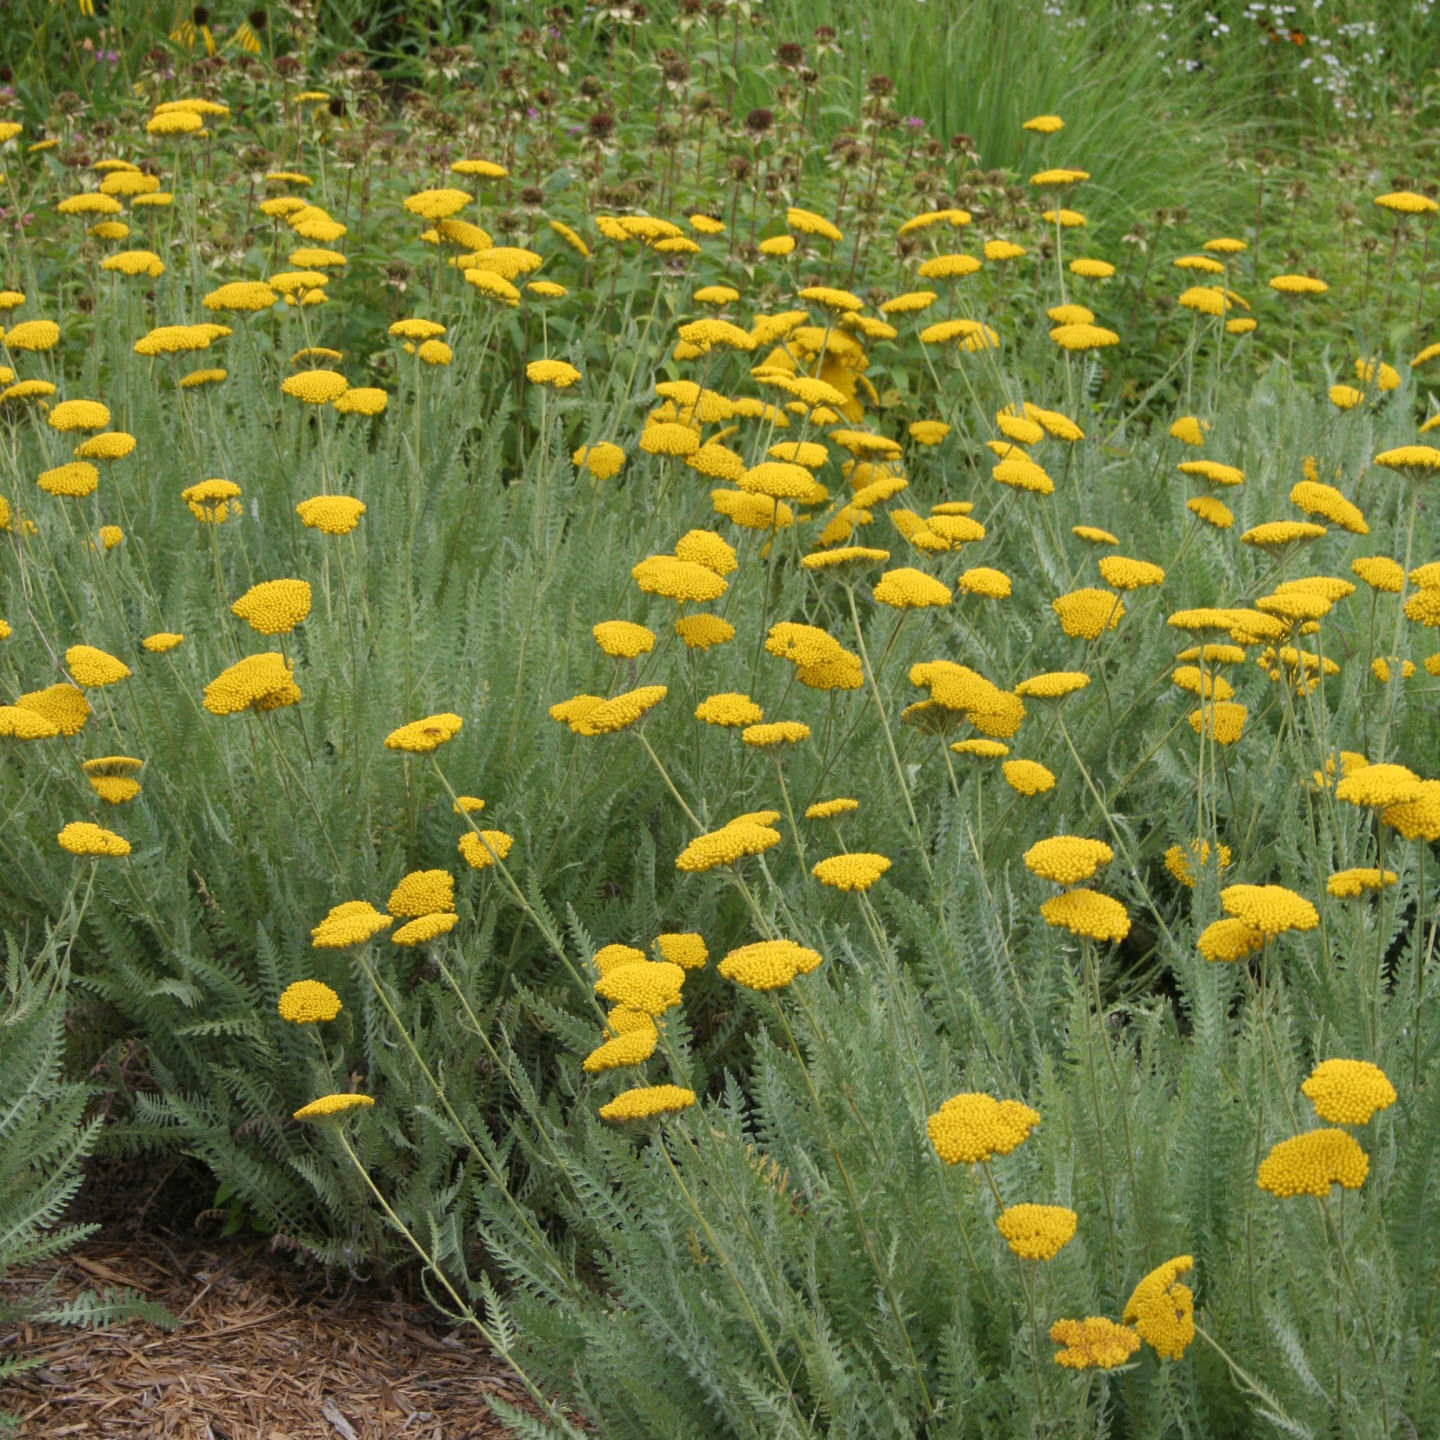 Native Plant Communities of the Great Plains Natures Heartland